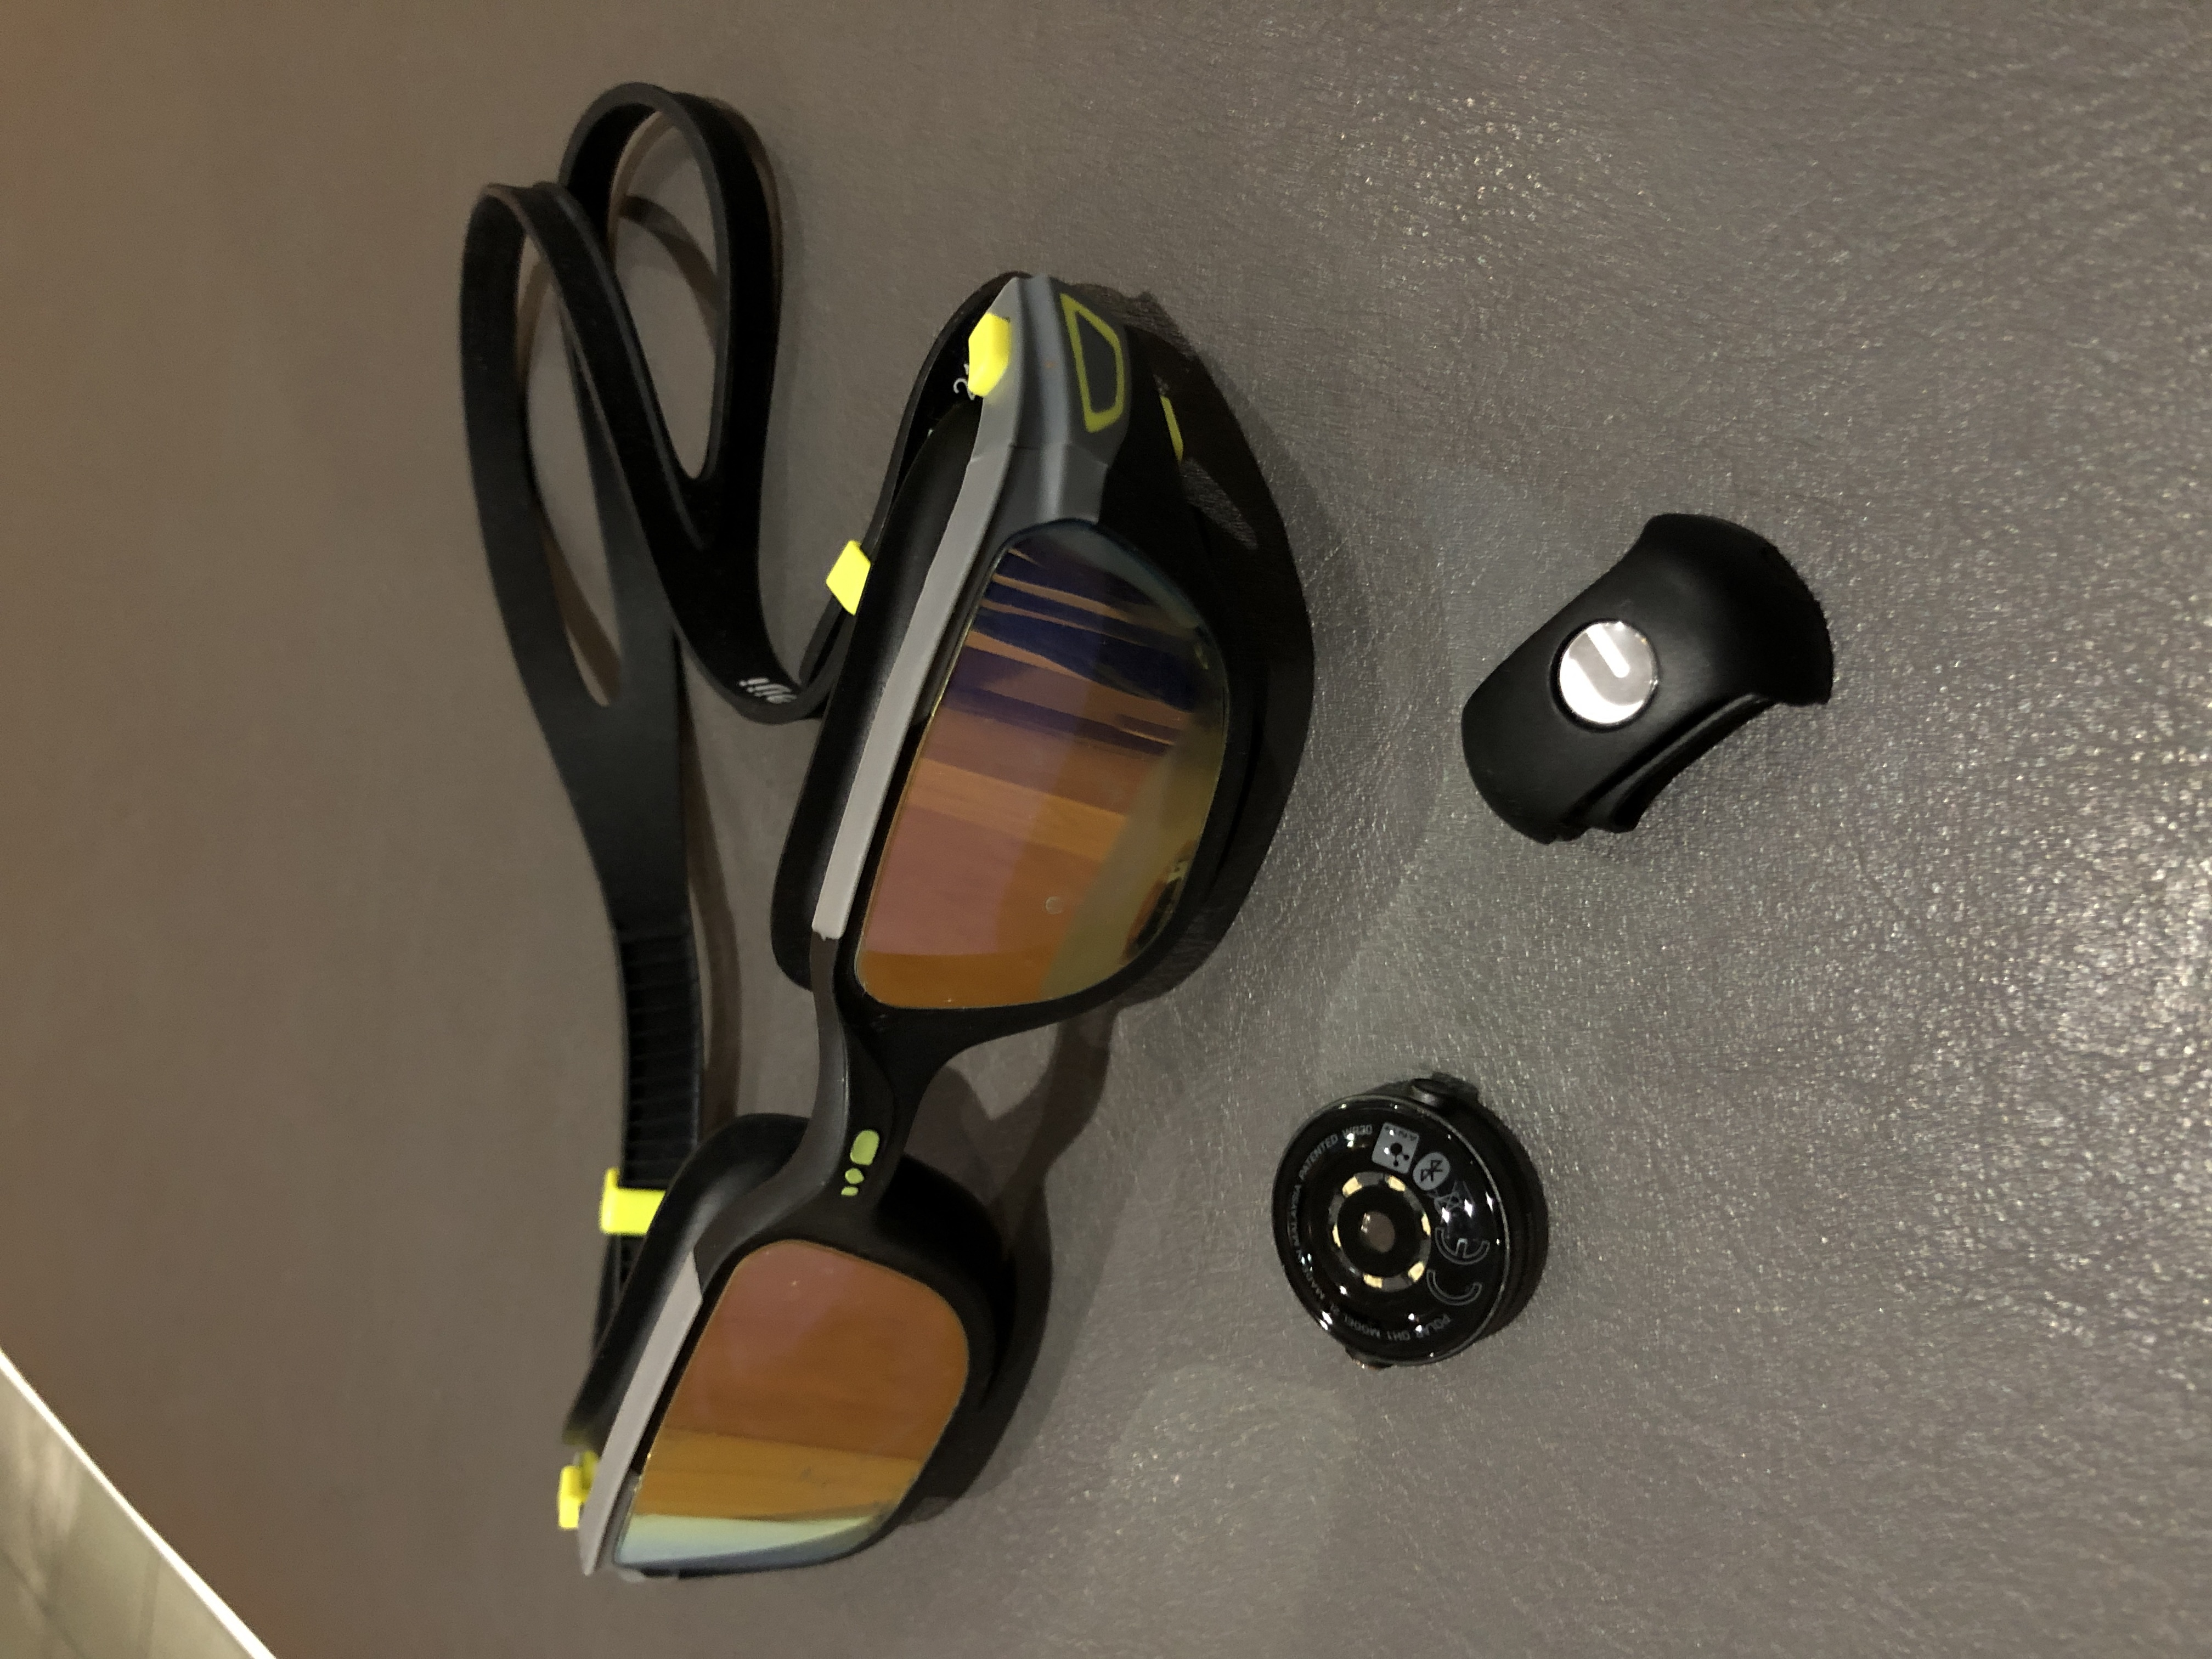 TitaniumGeek img 1736 FORM Swim Goggles   Pipeline Post Gear Reviews Triathlon    Image of img 1736